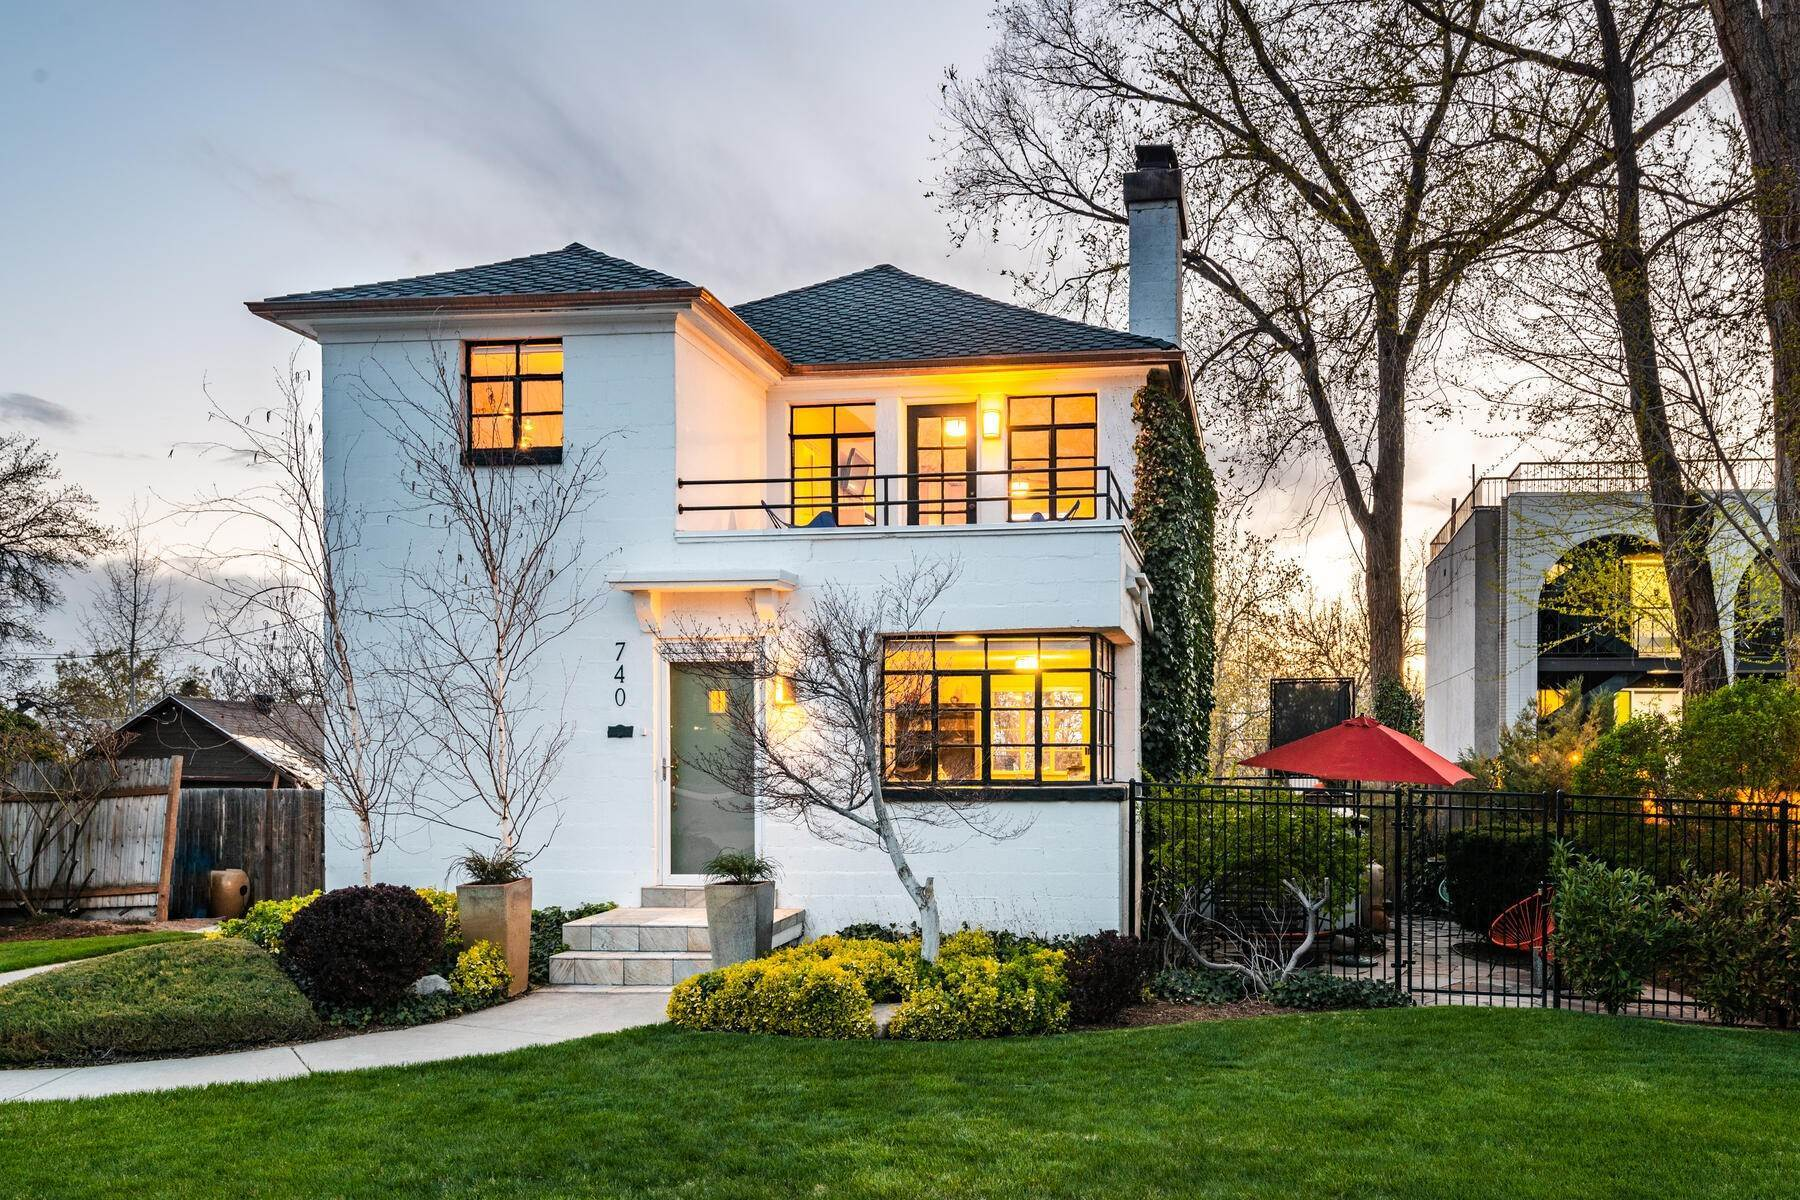 Single Family Homes for Sale at Art Deco Inspired Contemporary Home 740 S 1200 E Salt Lake City, Utah 84102 United States